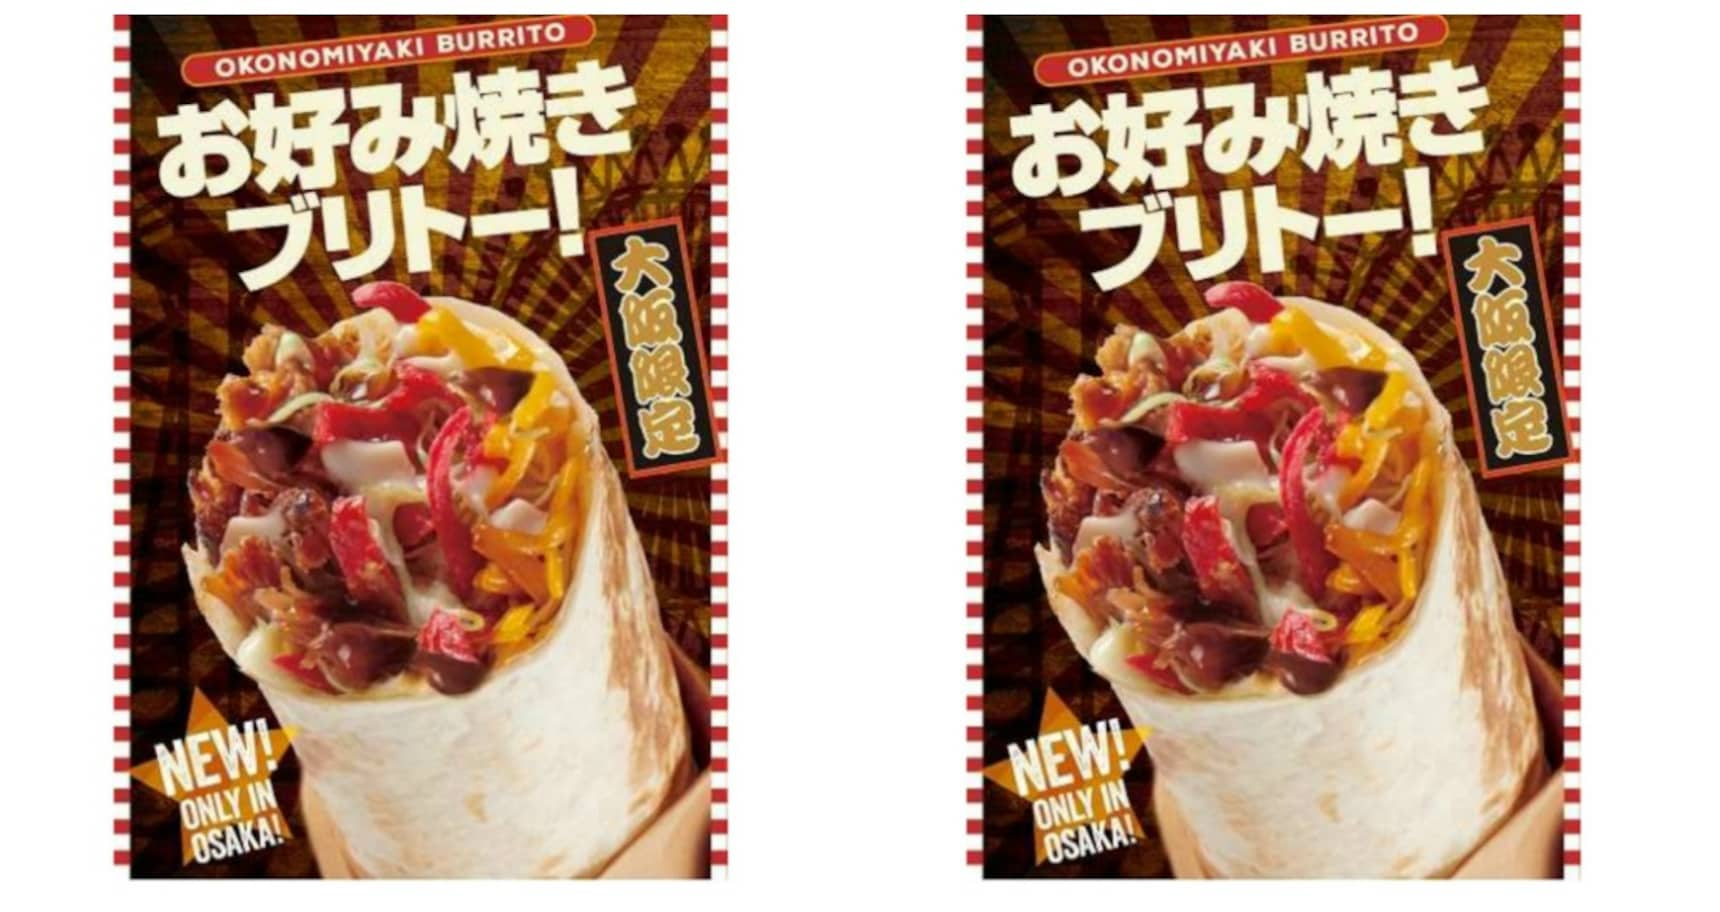 Okonomiyaki Burrito: Only in Osaka